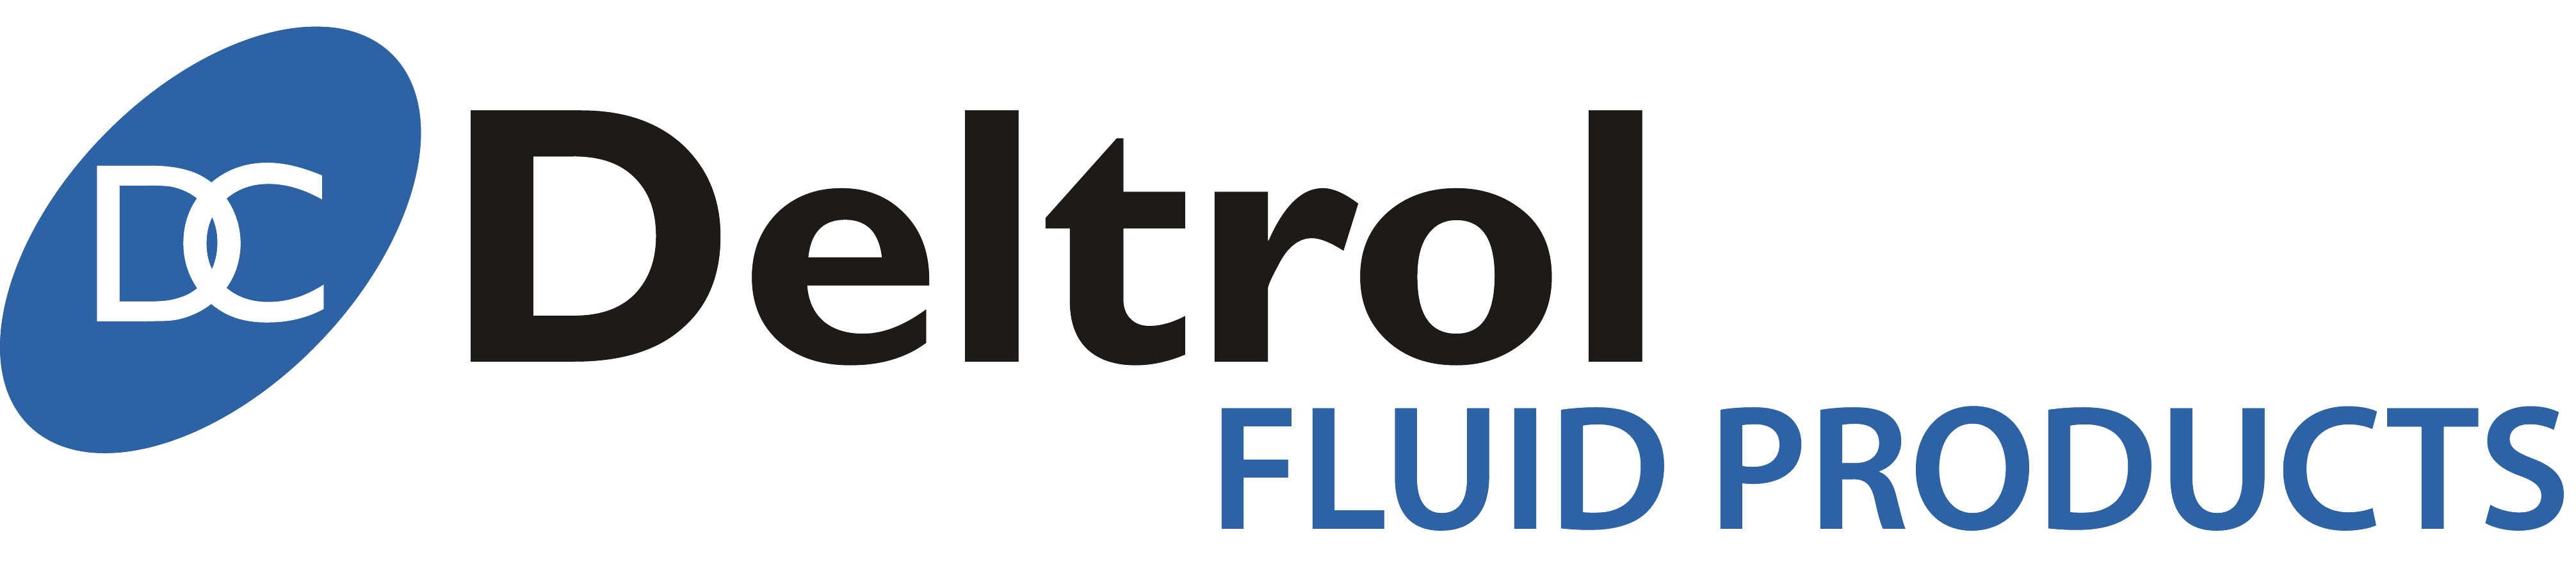 Deltrol Fluid Products Logo